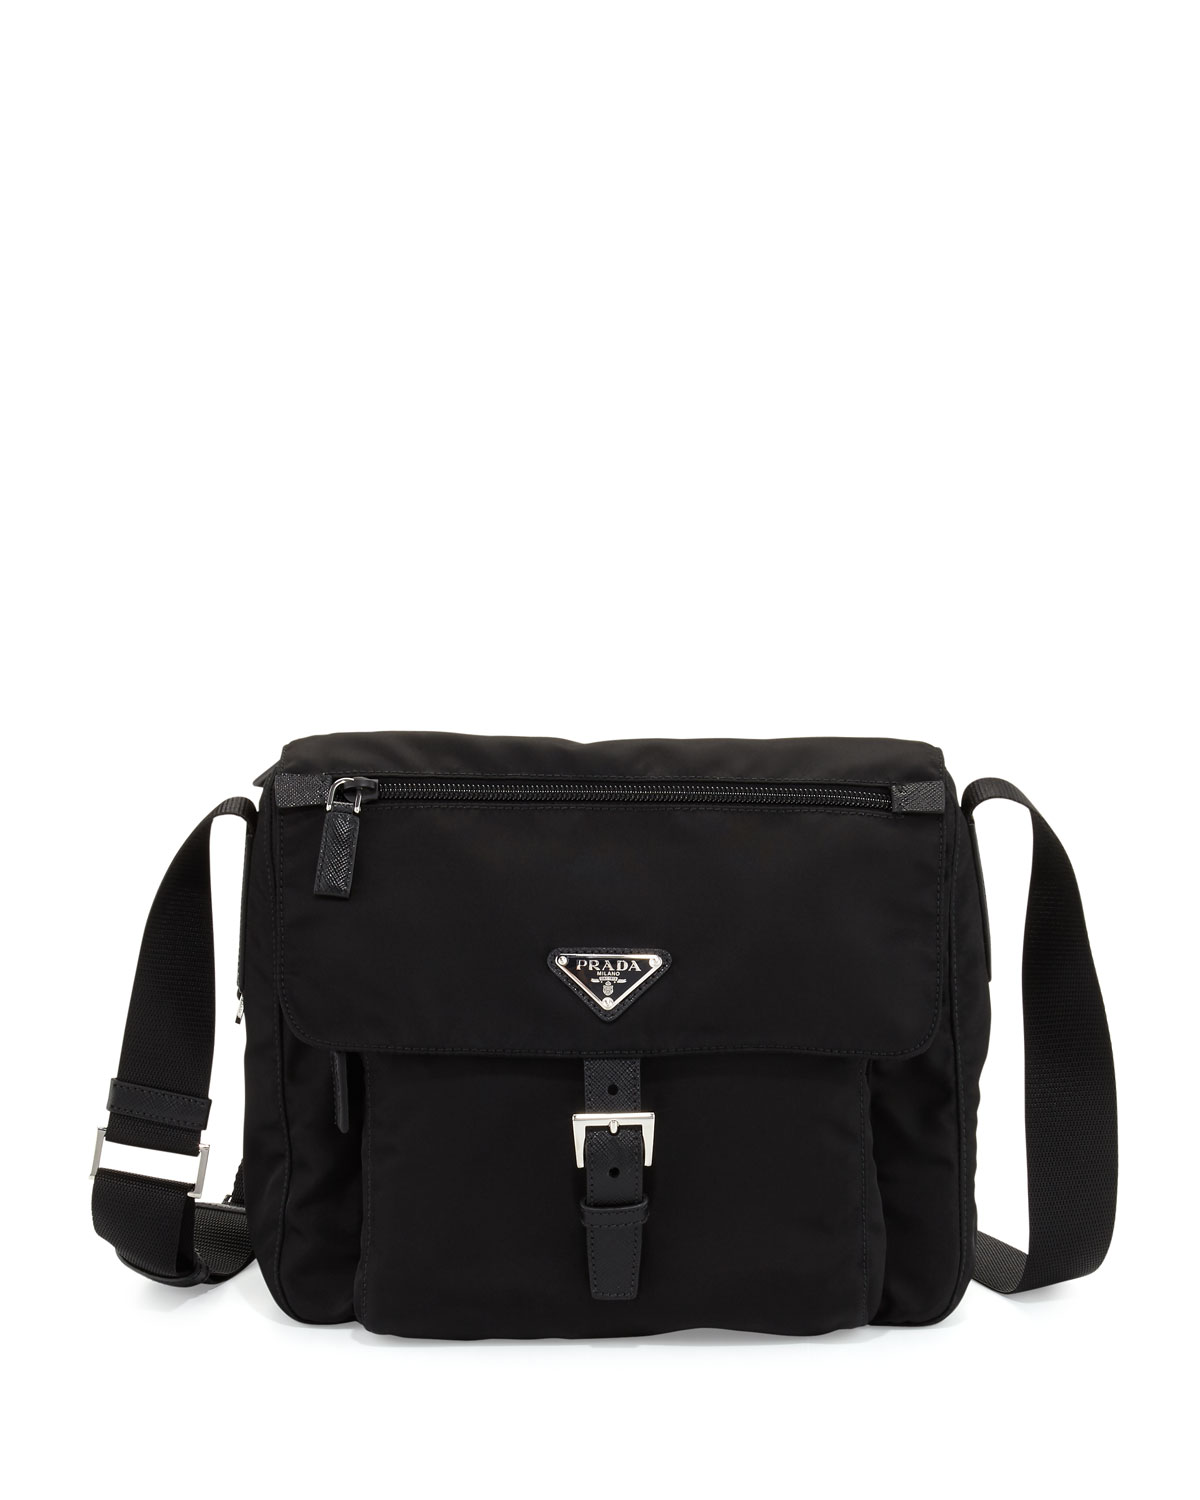 80f29e173e8b Prada Small Nylon Crossbody Bag, Black (Nero) | Neiman Marcus